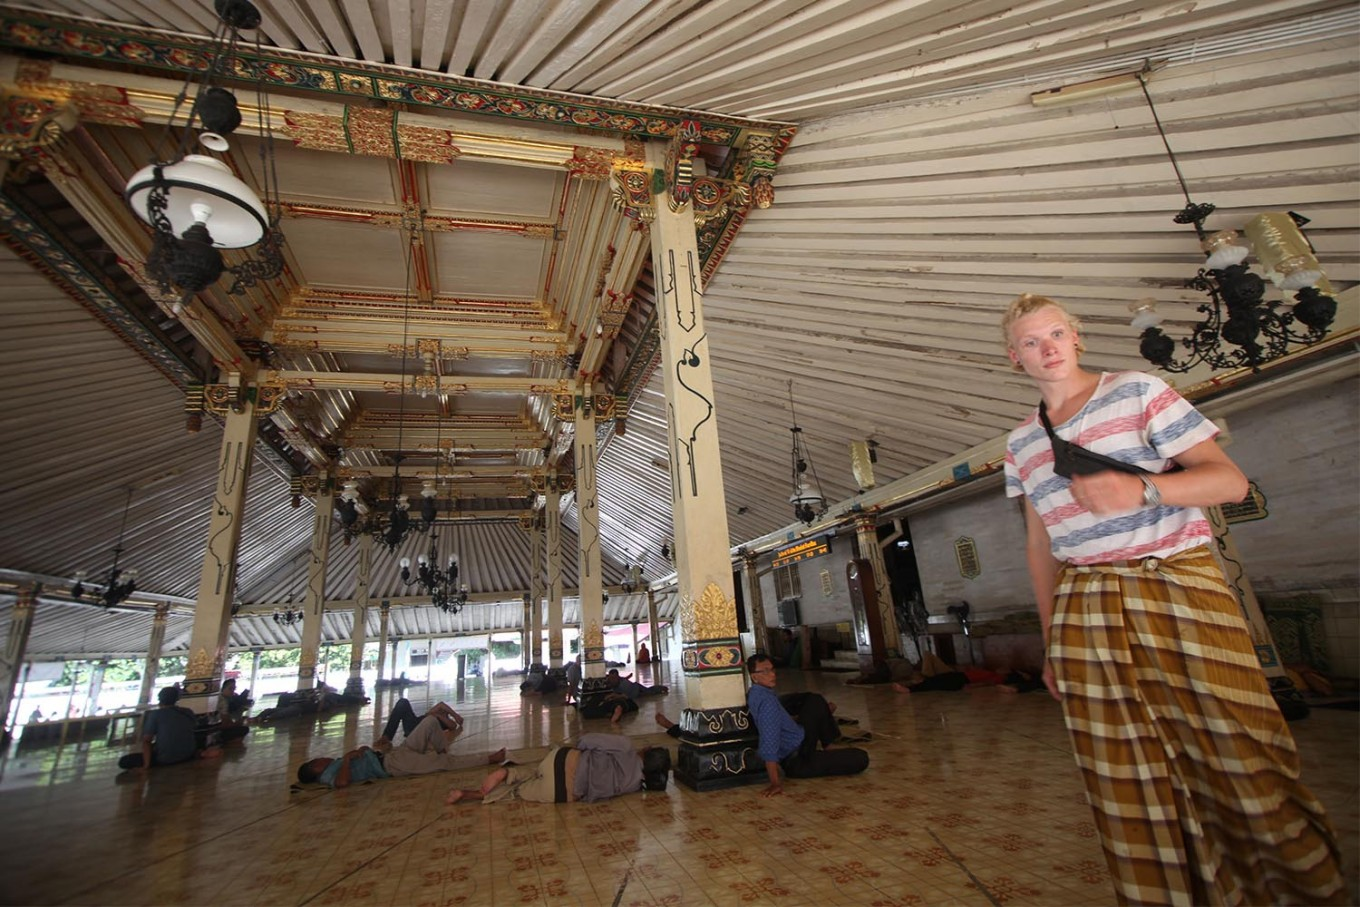 A Danish tourist wears a sarong upon entering the mosque, as required. JP/Boy T. Harjanto